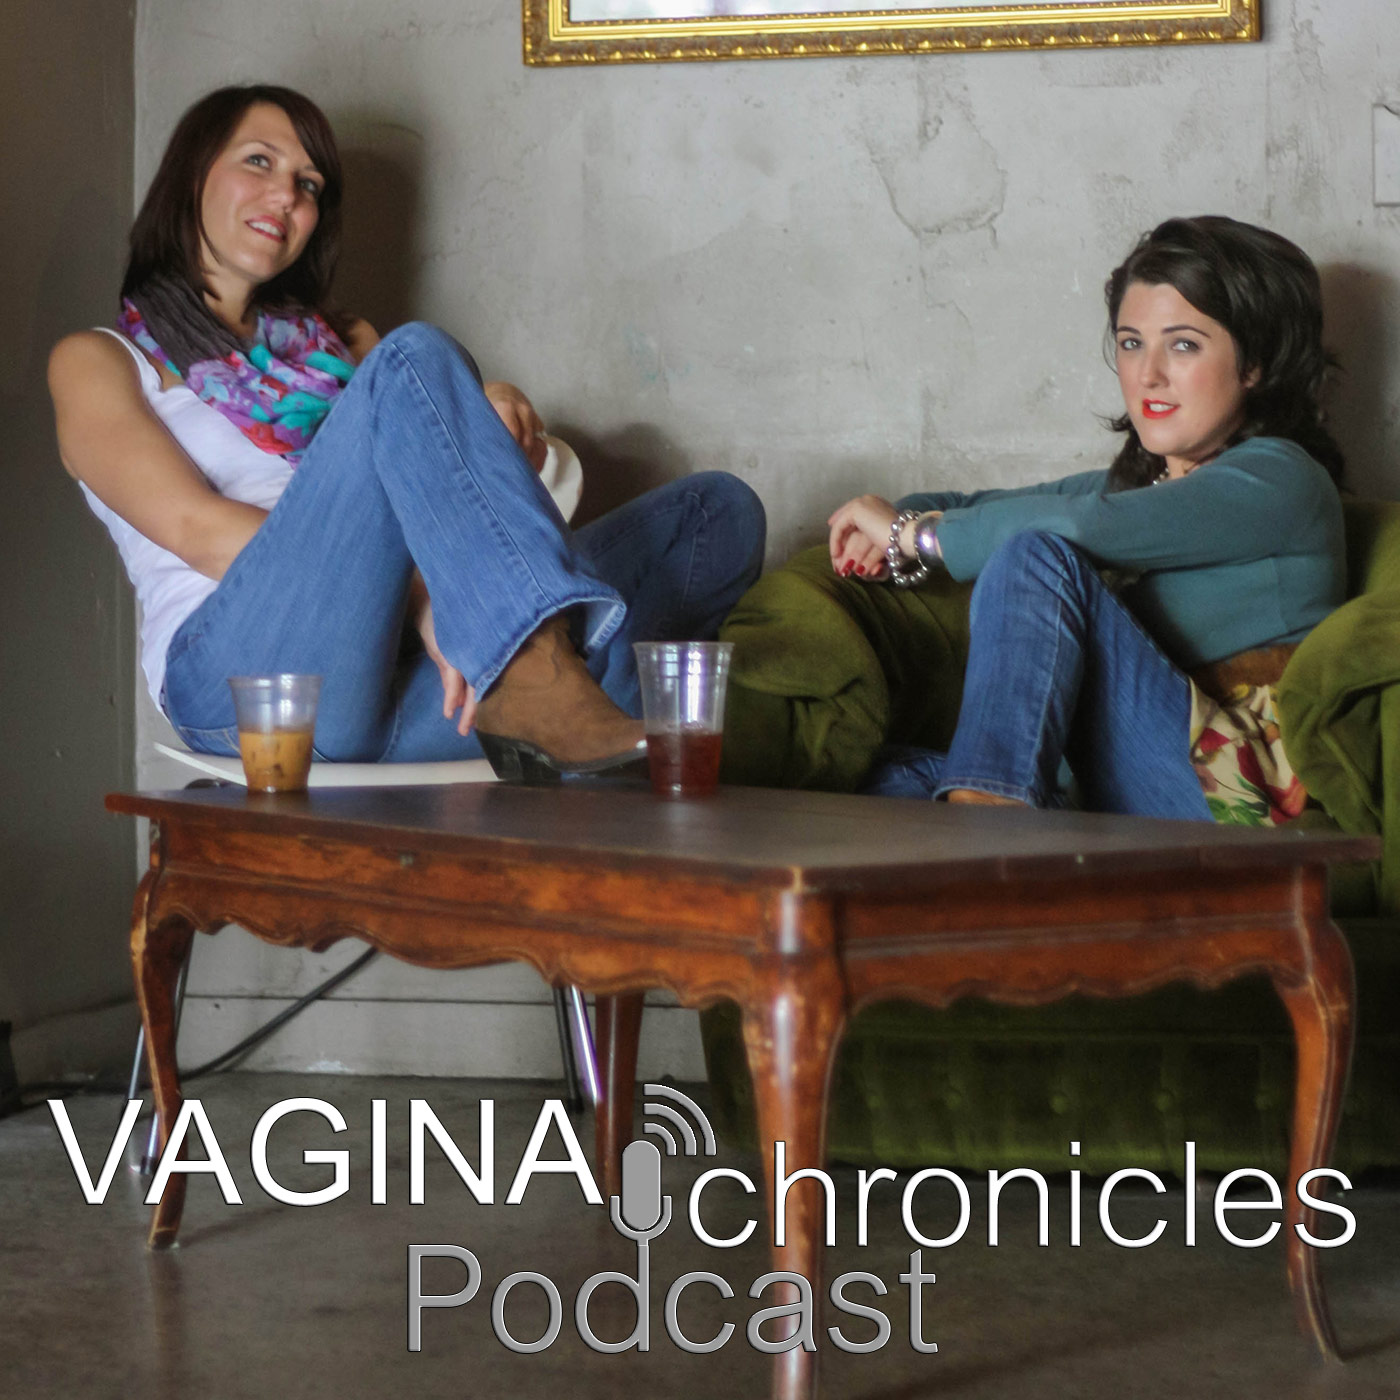 Vagina Chronicles Podcast